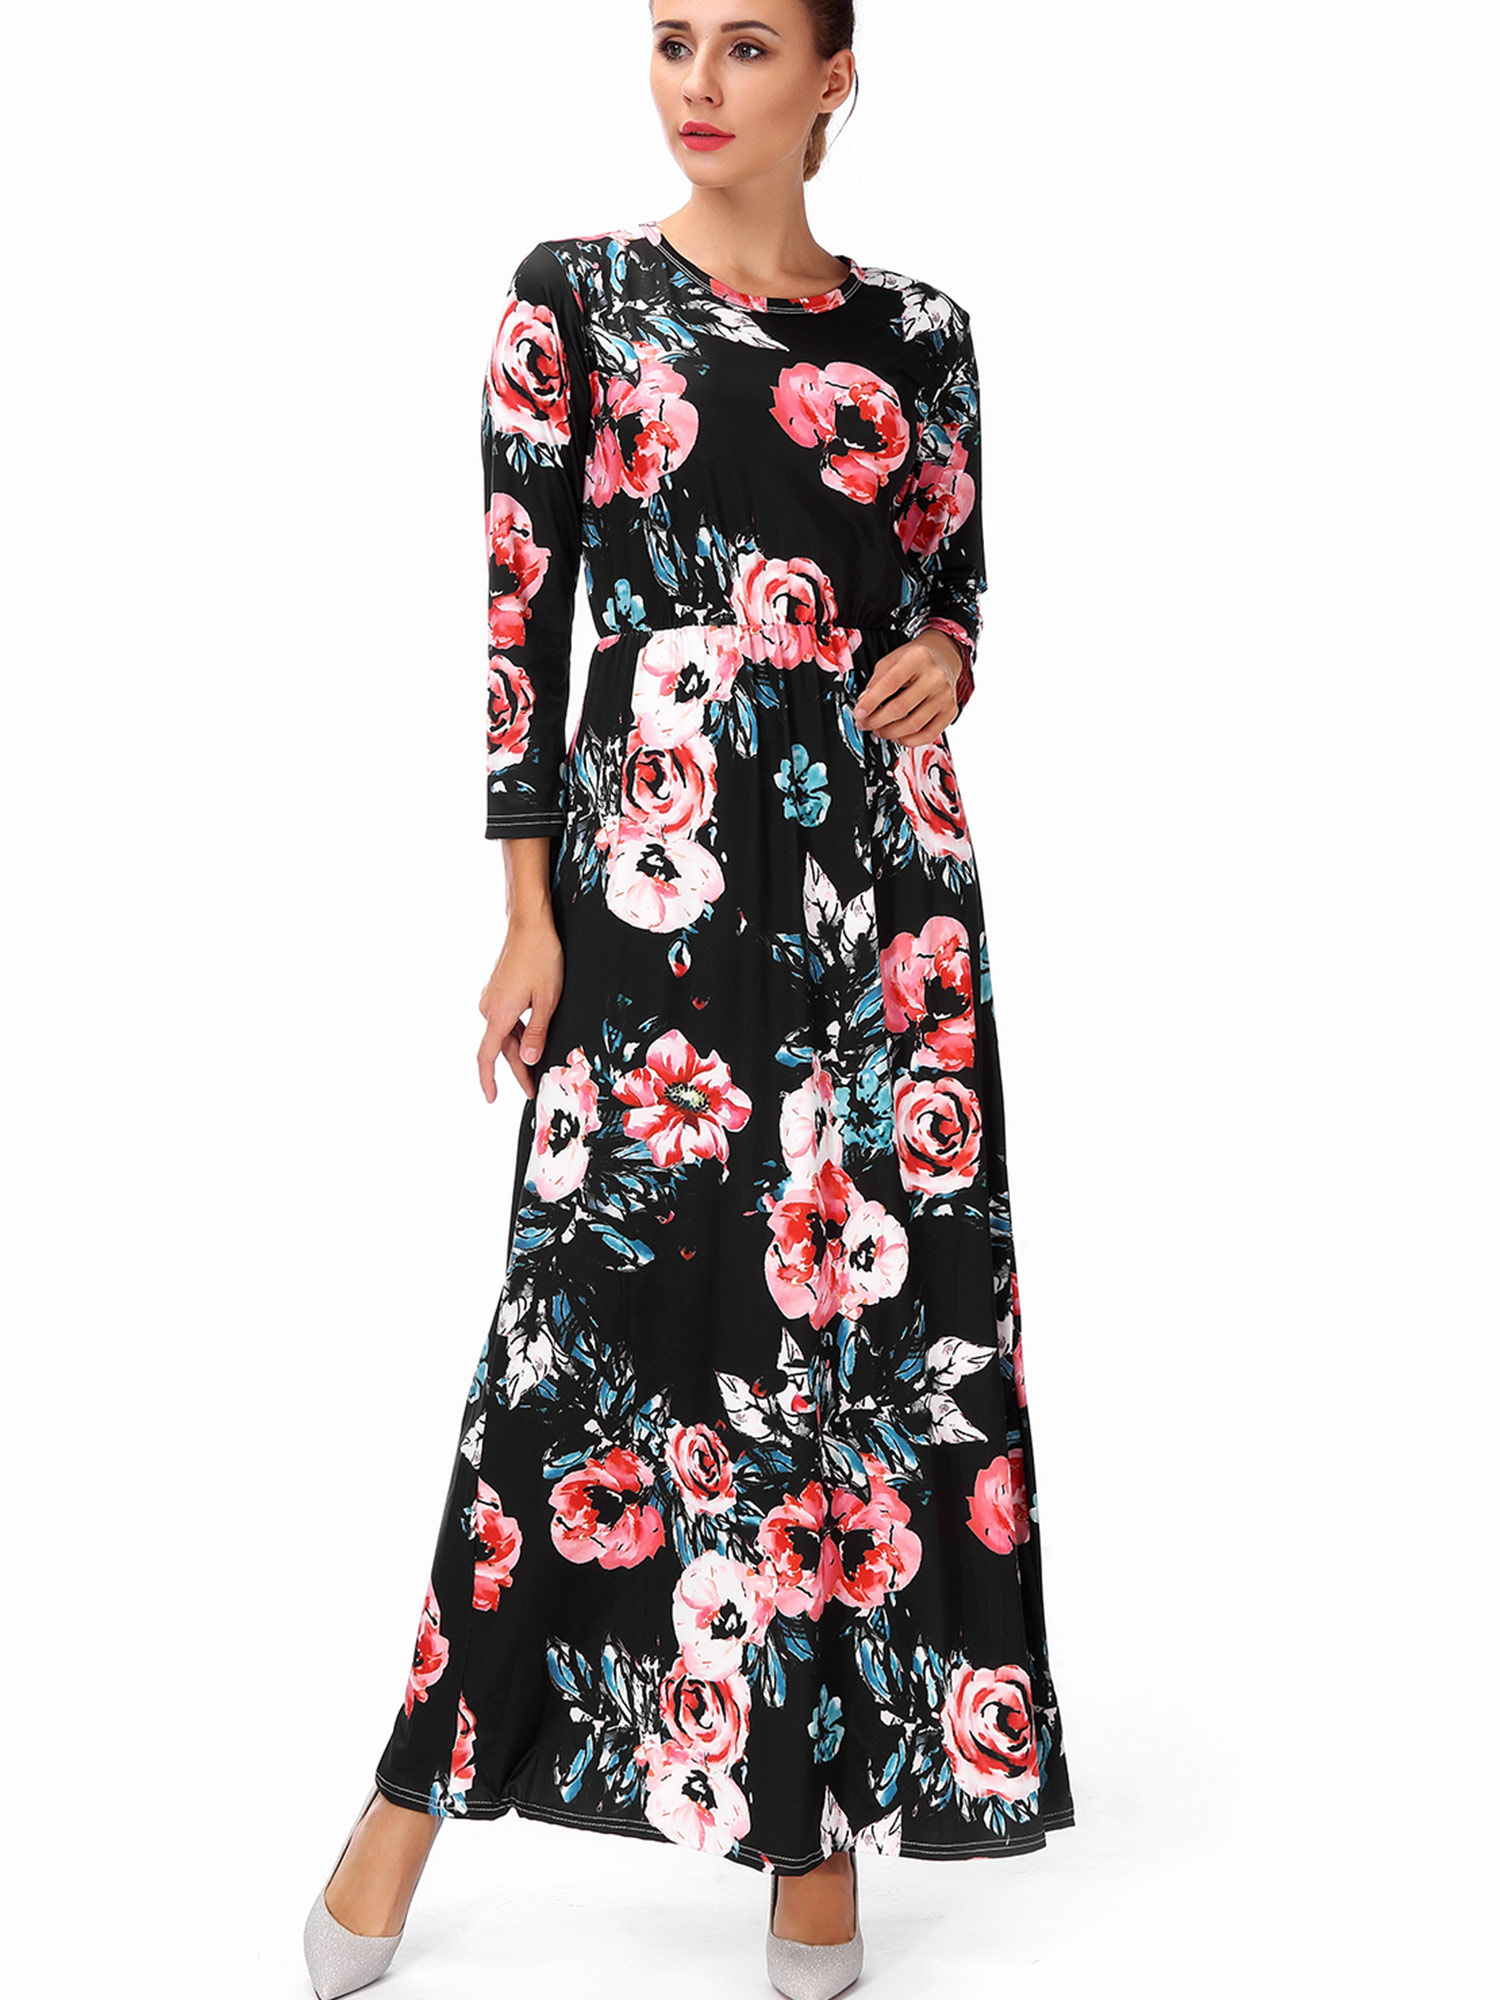 SAYFUT - Plus Size Maternity Dresses Long Sleeve Empire ...